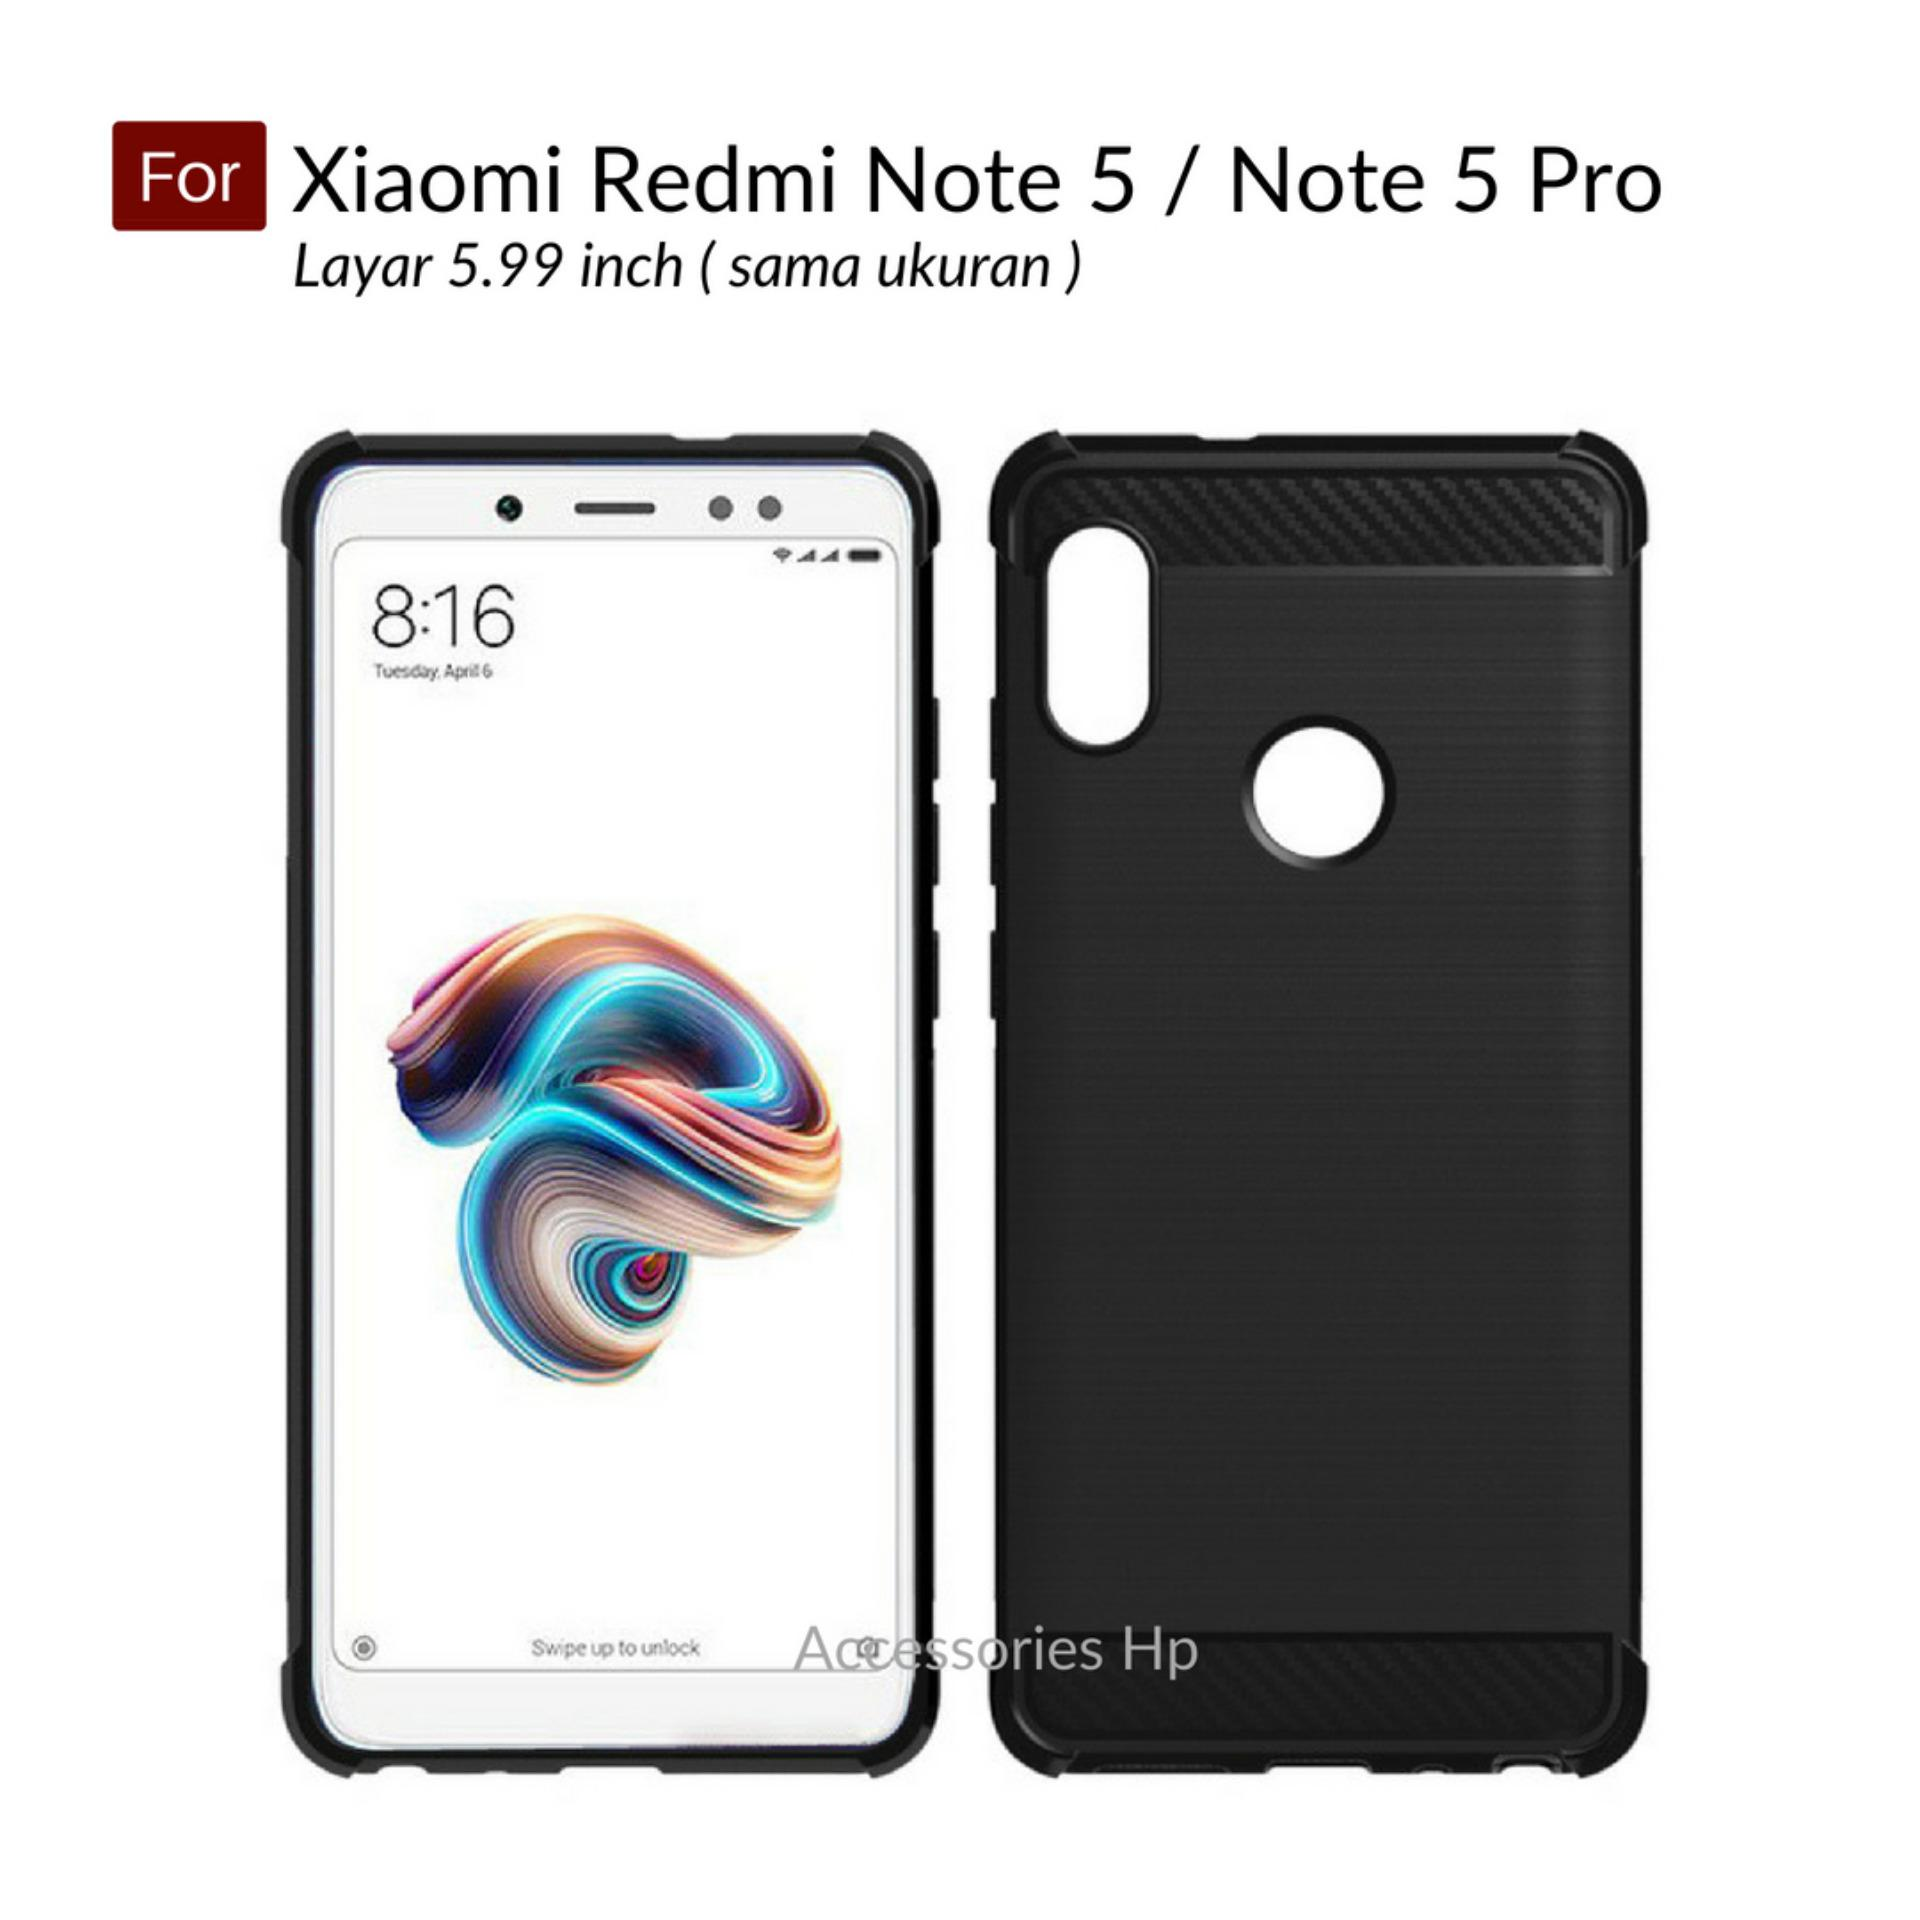 Accessories Hp Brushed Carbon Crack Case Xiaomi Redmi Note 5 / Note 5 Pro ( 5.99 inch ) - Black